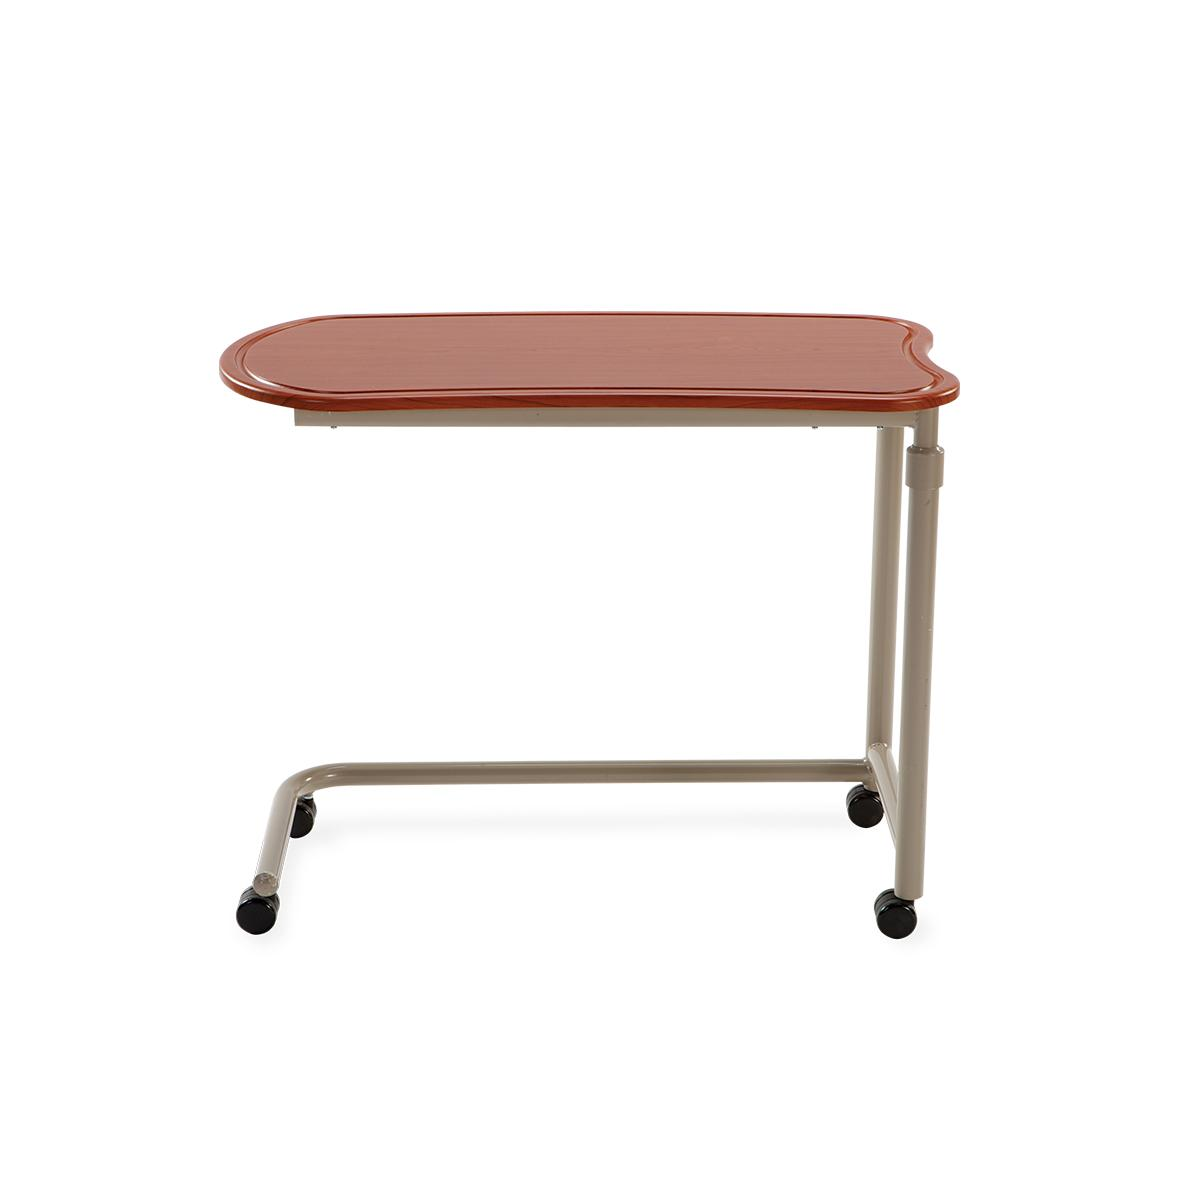 Art of Care Overbed Tables, red table top, underbed portion left facing